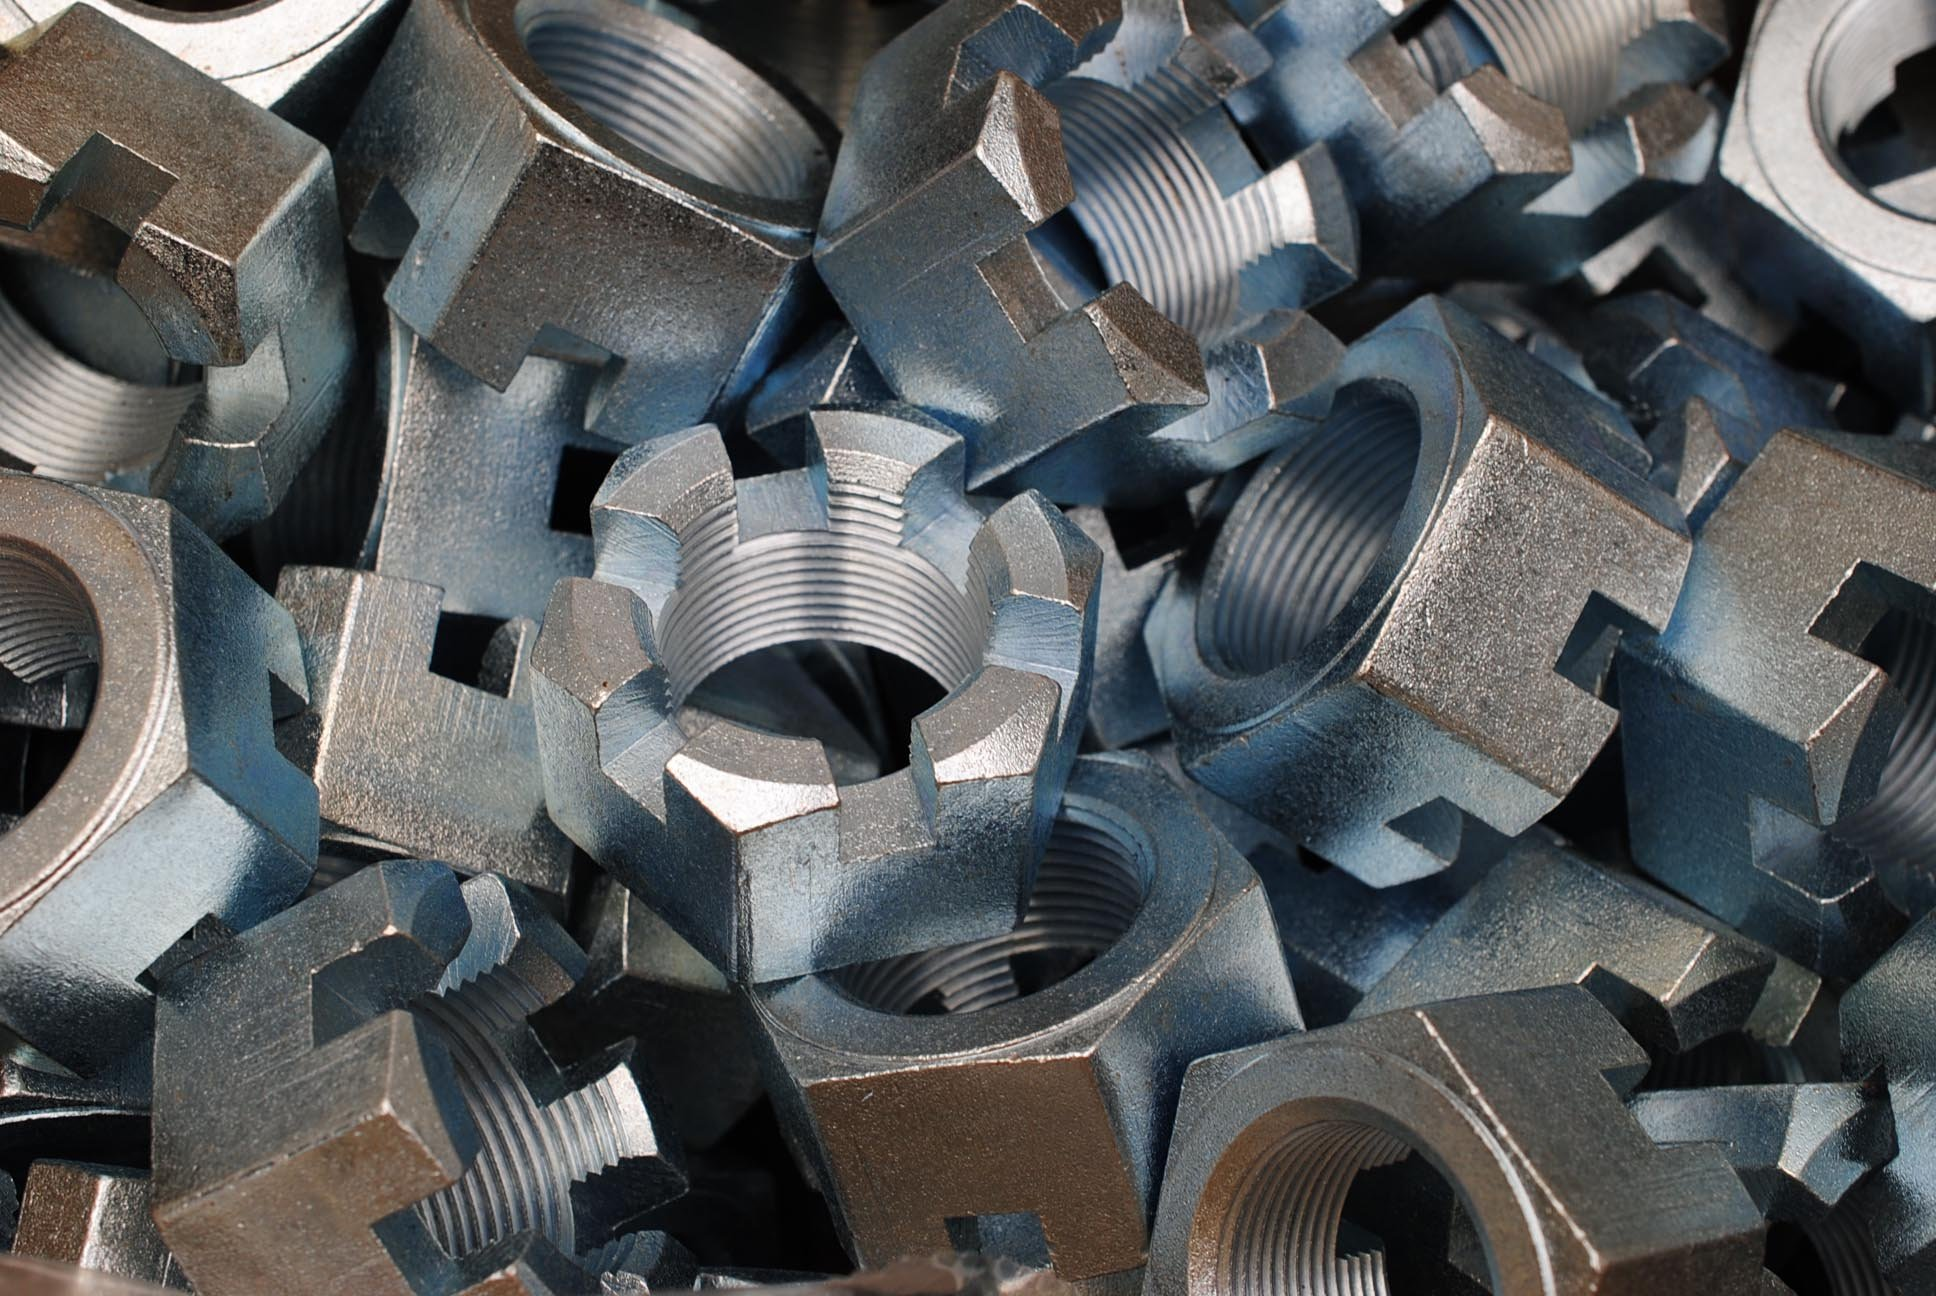 (6) Slotted Hex Castle Nuts 1-1/2-12 Fine Thread Zinc Plated 1-1/2''-12 by Lexar Industrial